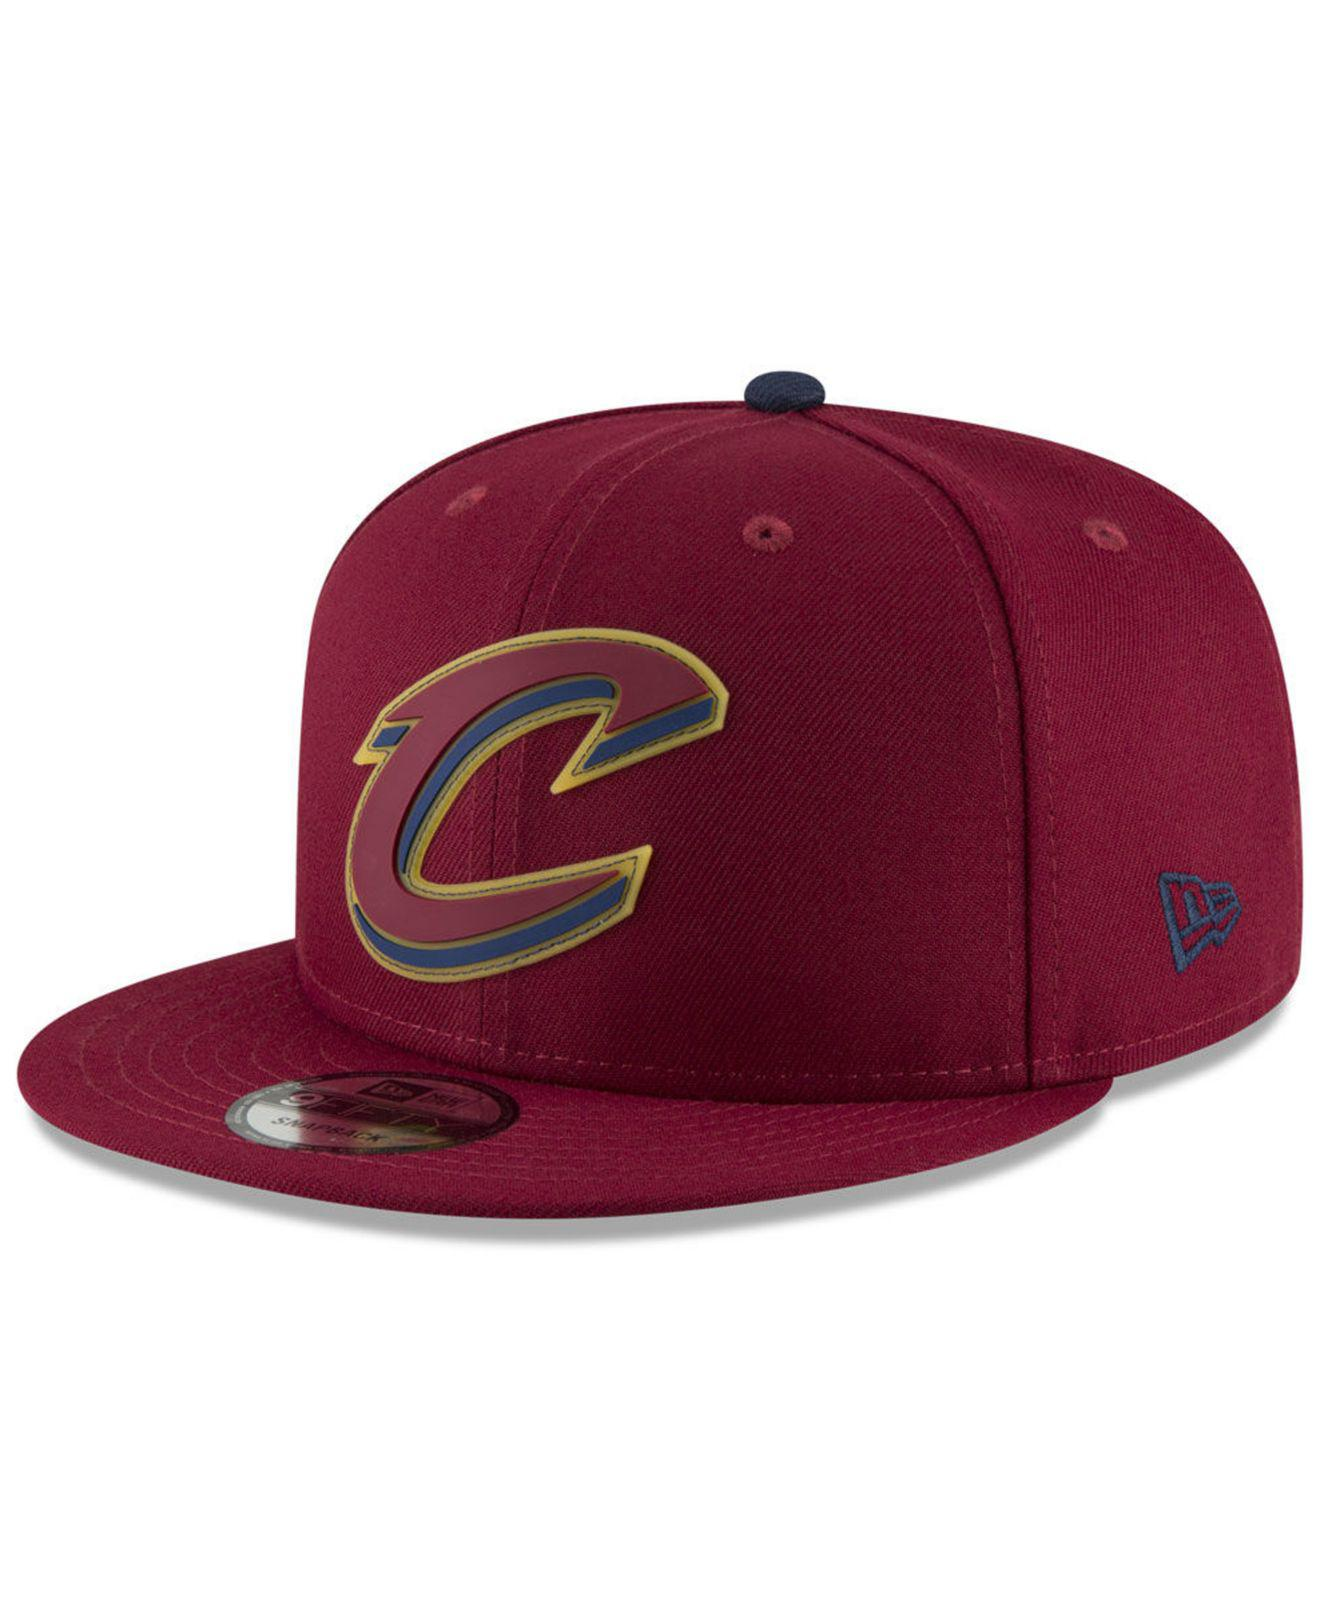 low cost 4c615 cc207 KTZ. Men s Cleveland Cavaliers Team Cleared 9fifty Snapback Cap